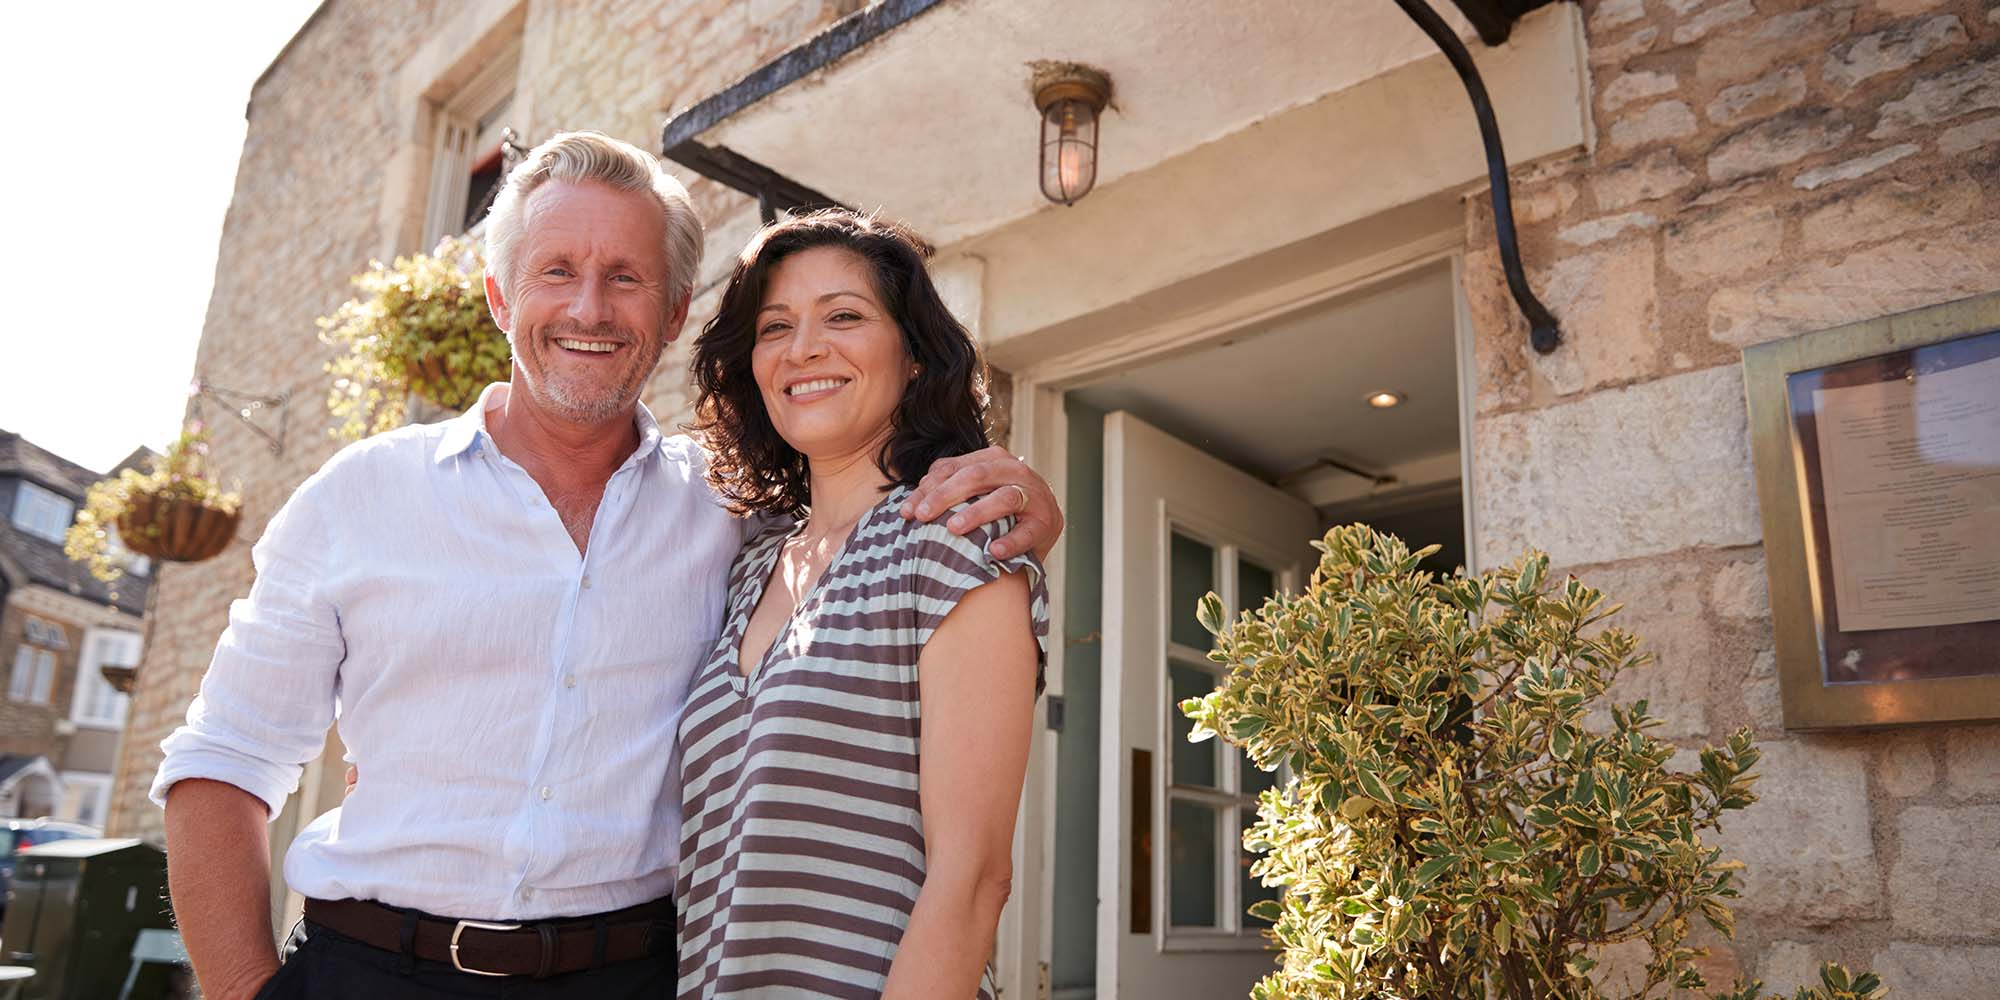 Older Mortgages Are on The Rise